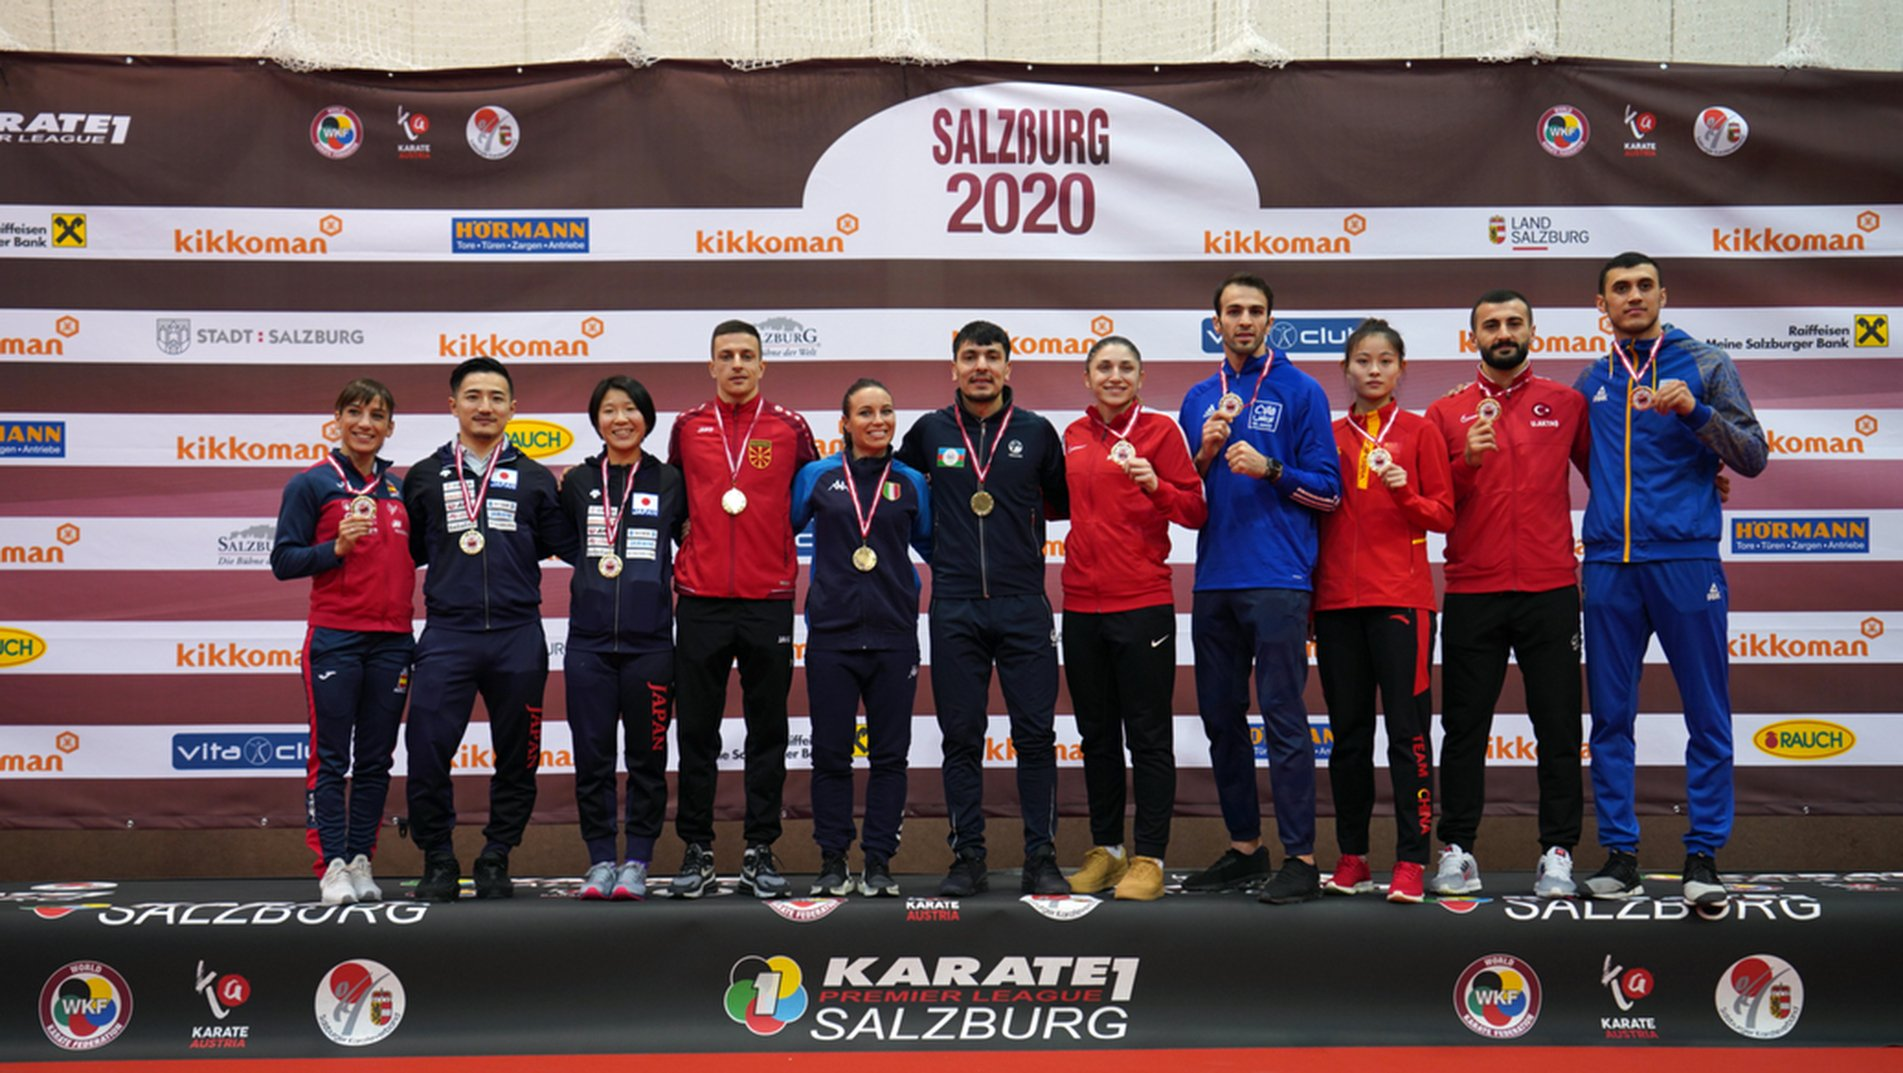 Karate 1 Premier League Salzburg crowns new Karate stars